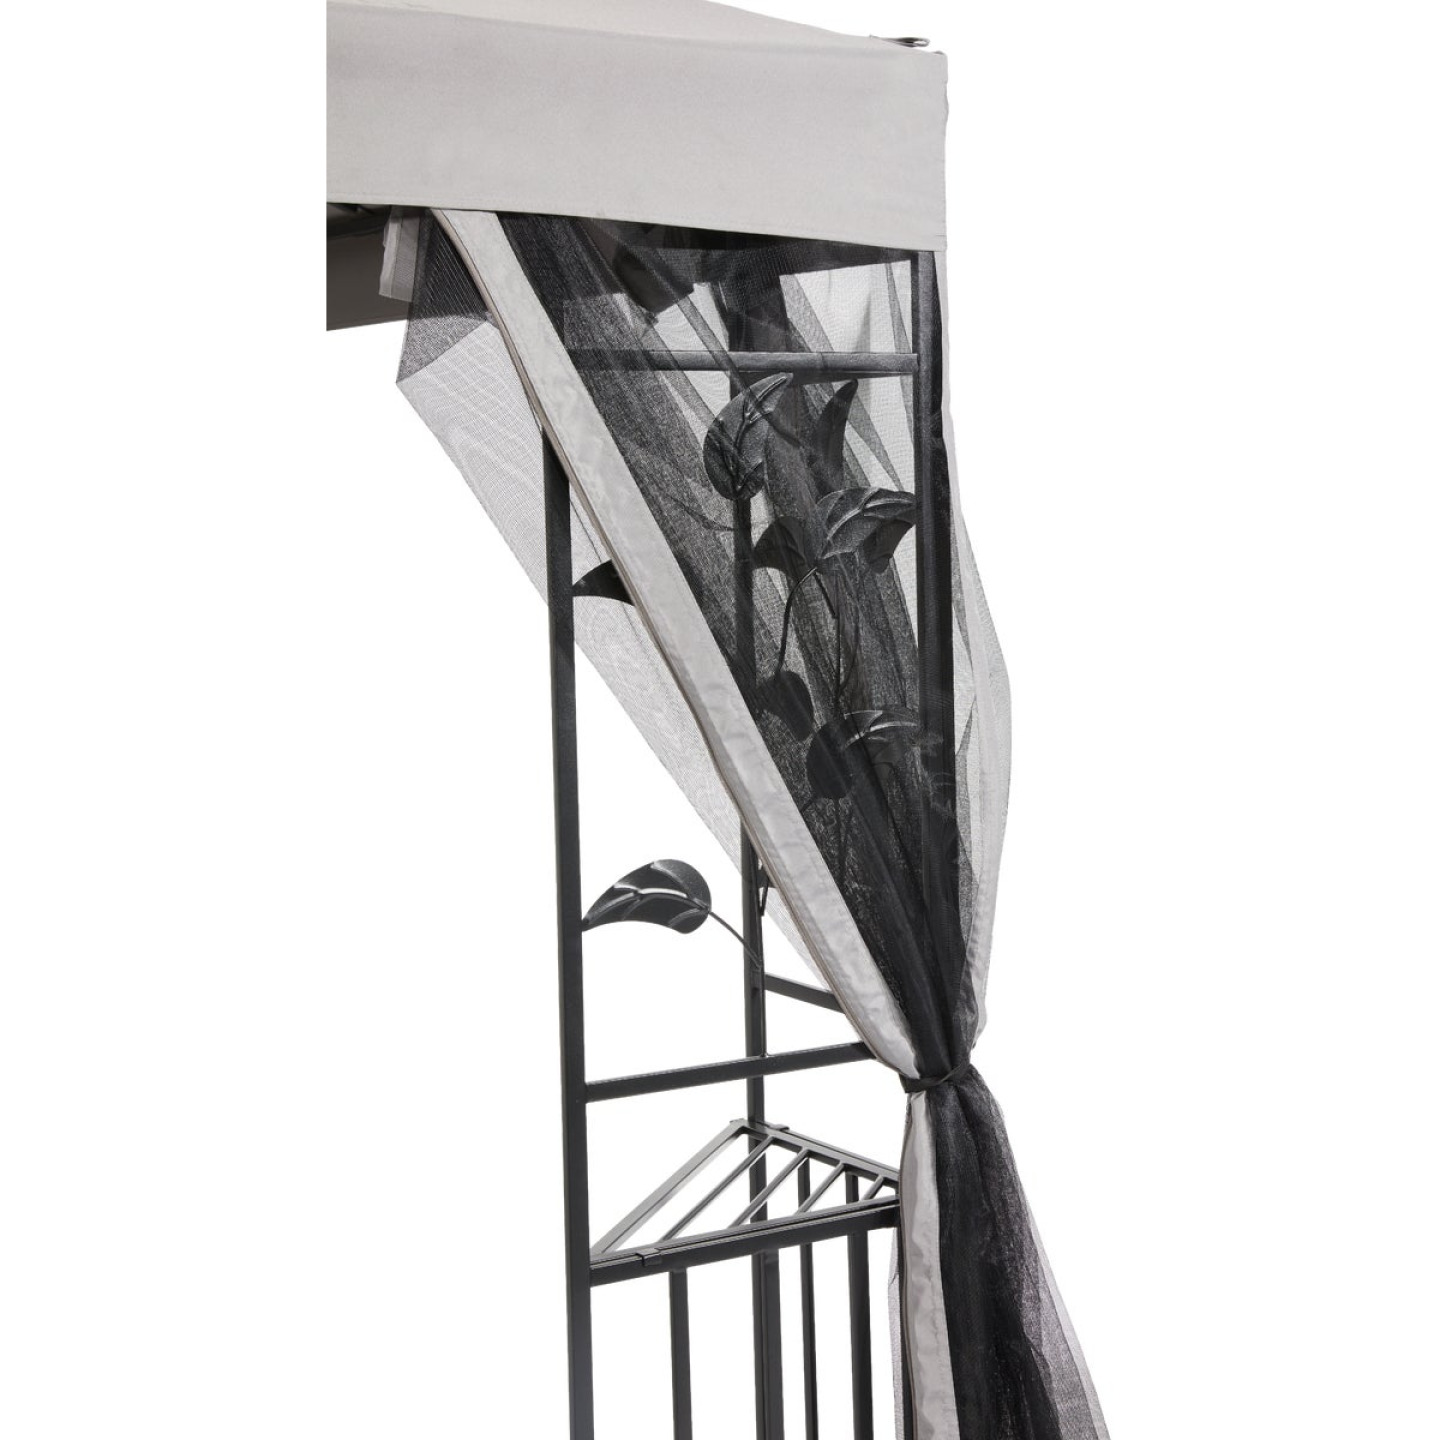 Outdoor Expressions 10 Ft. x 10 Ft. Gray & Black Steel Gazebo with Sides Image 11